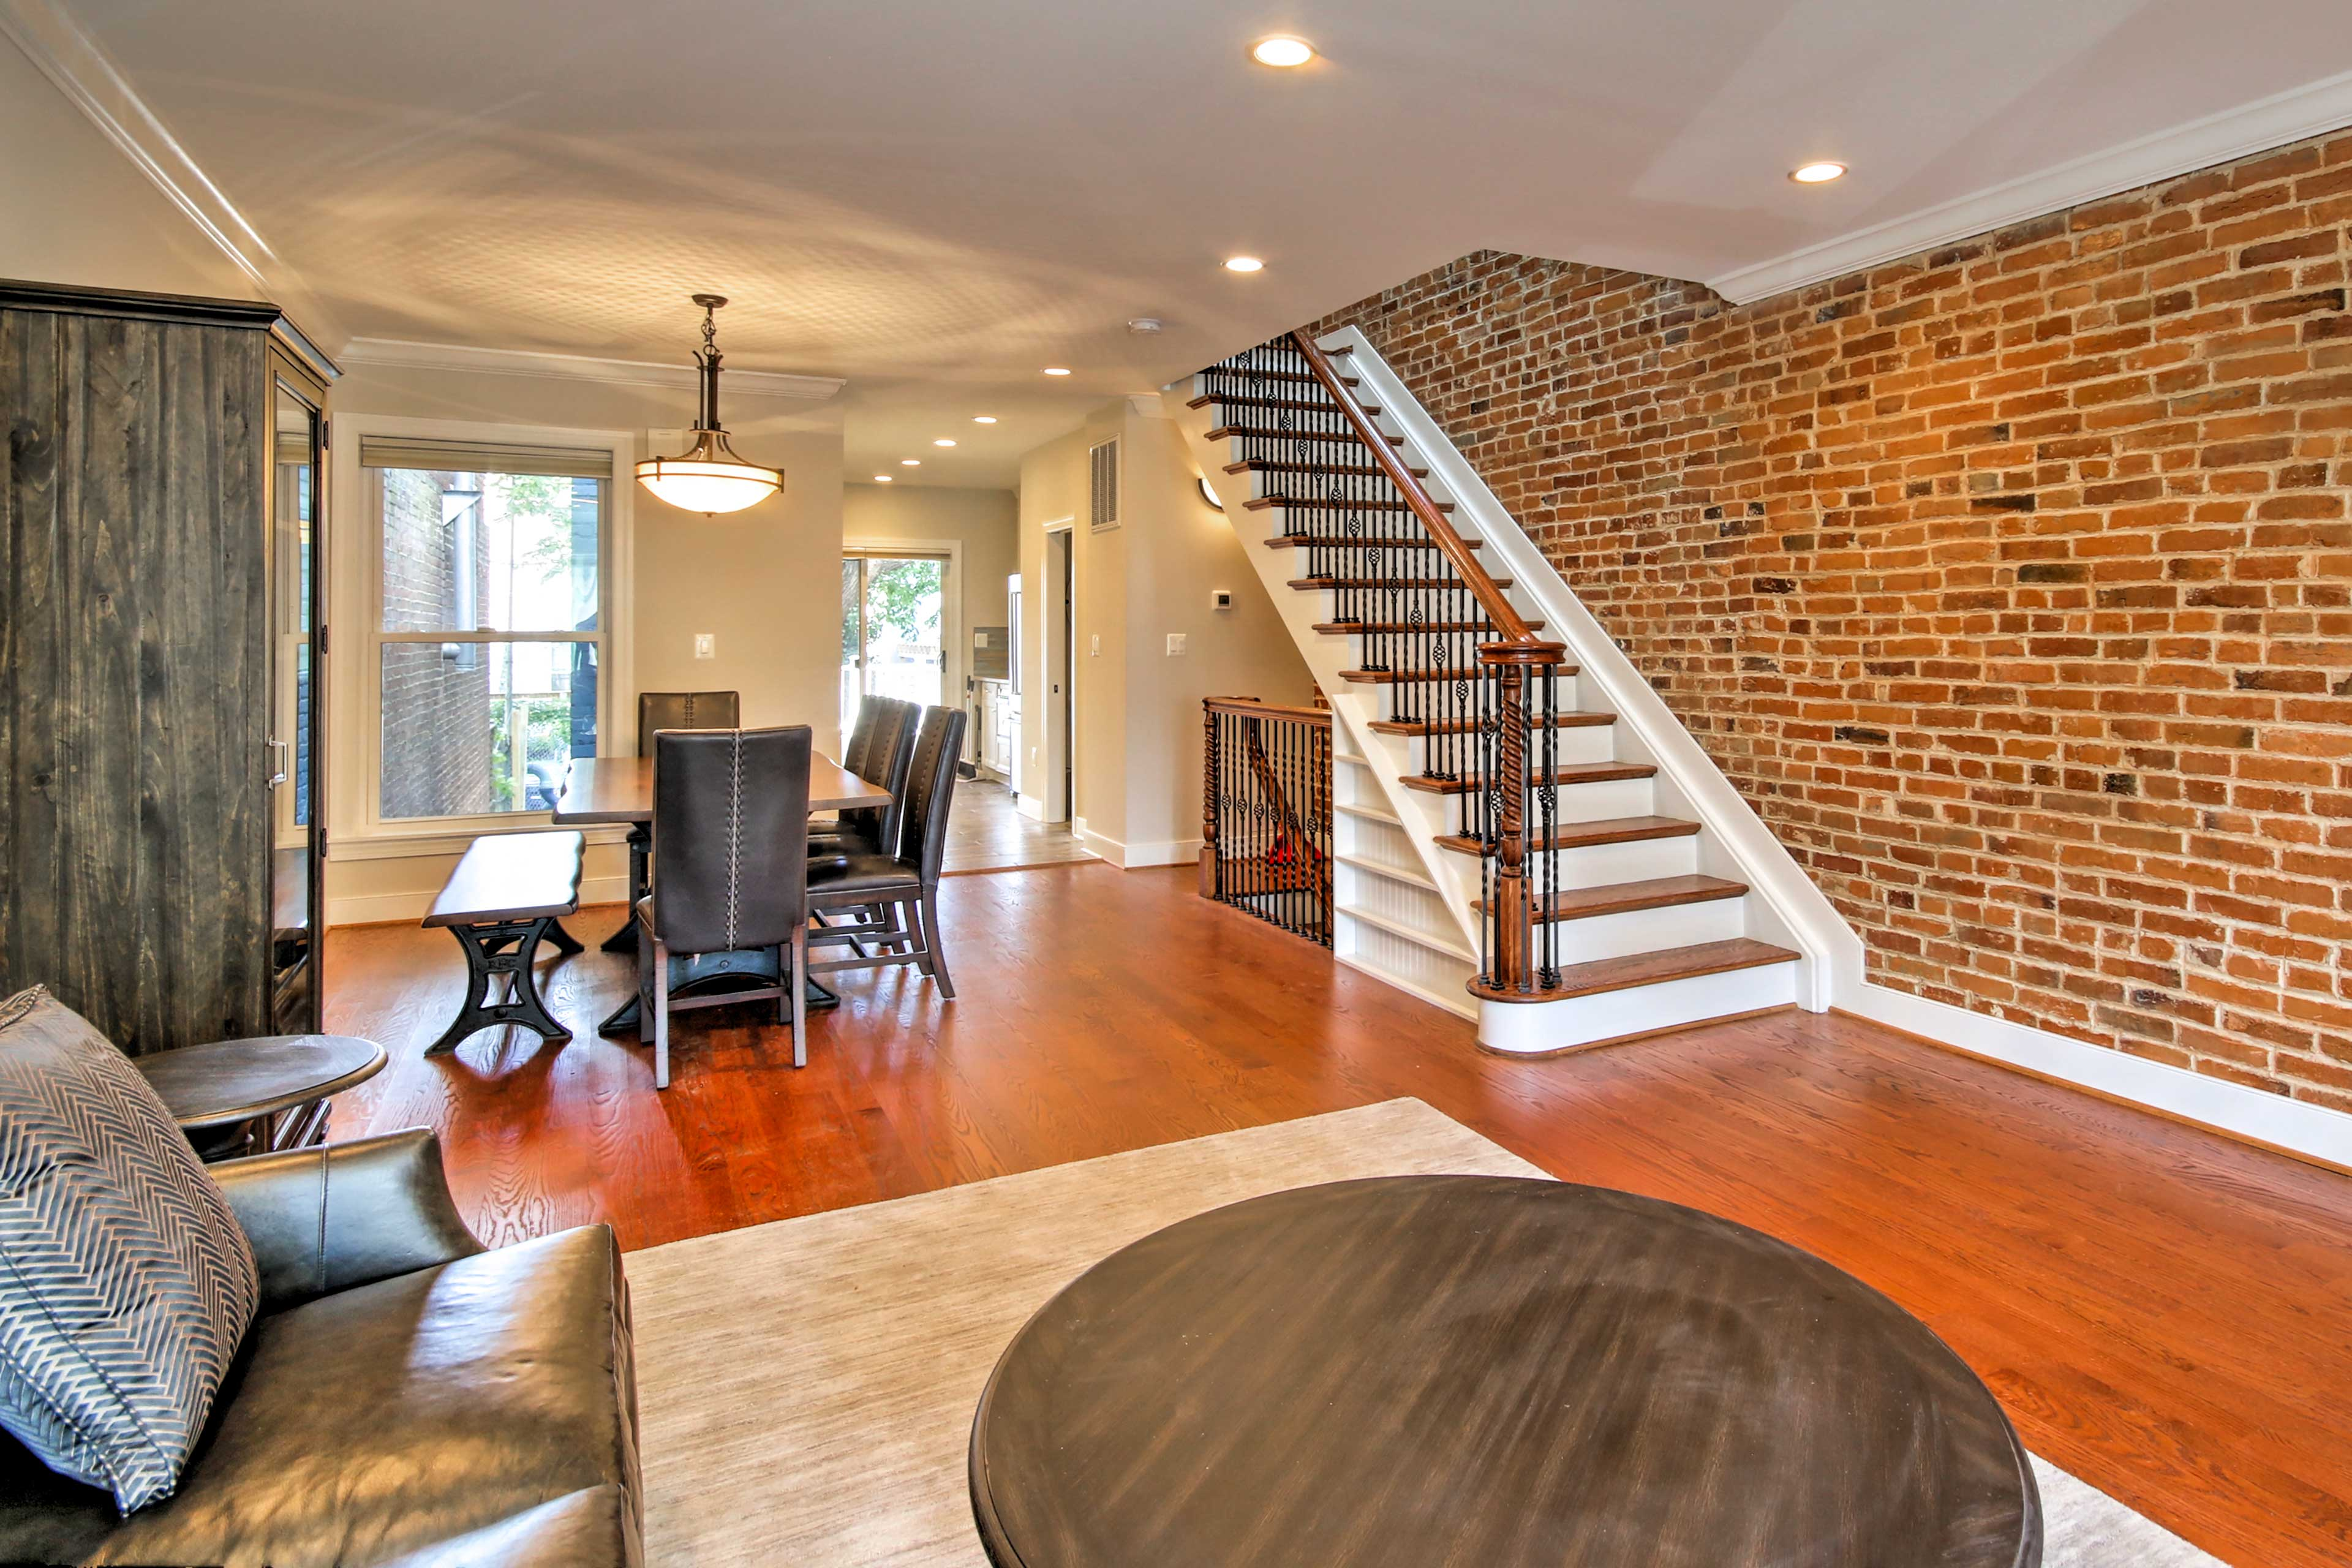 You'll love the exposed brick walls.